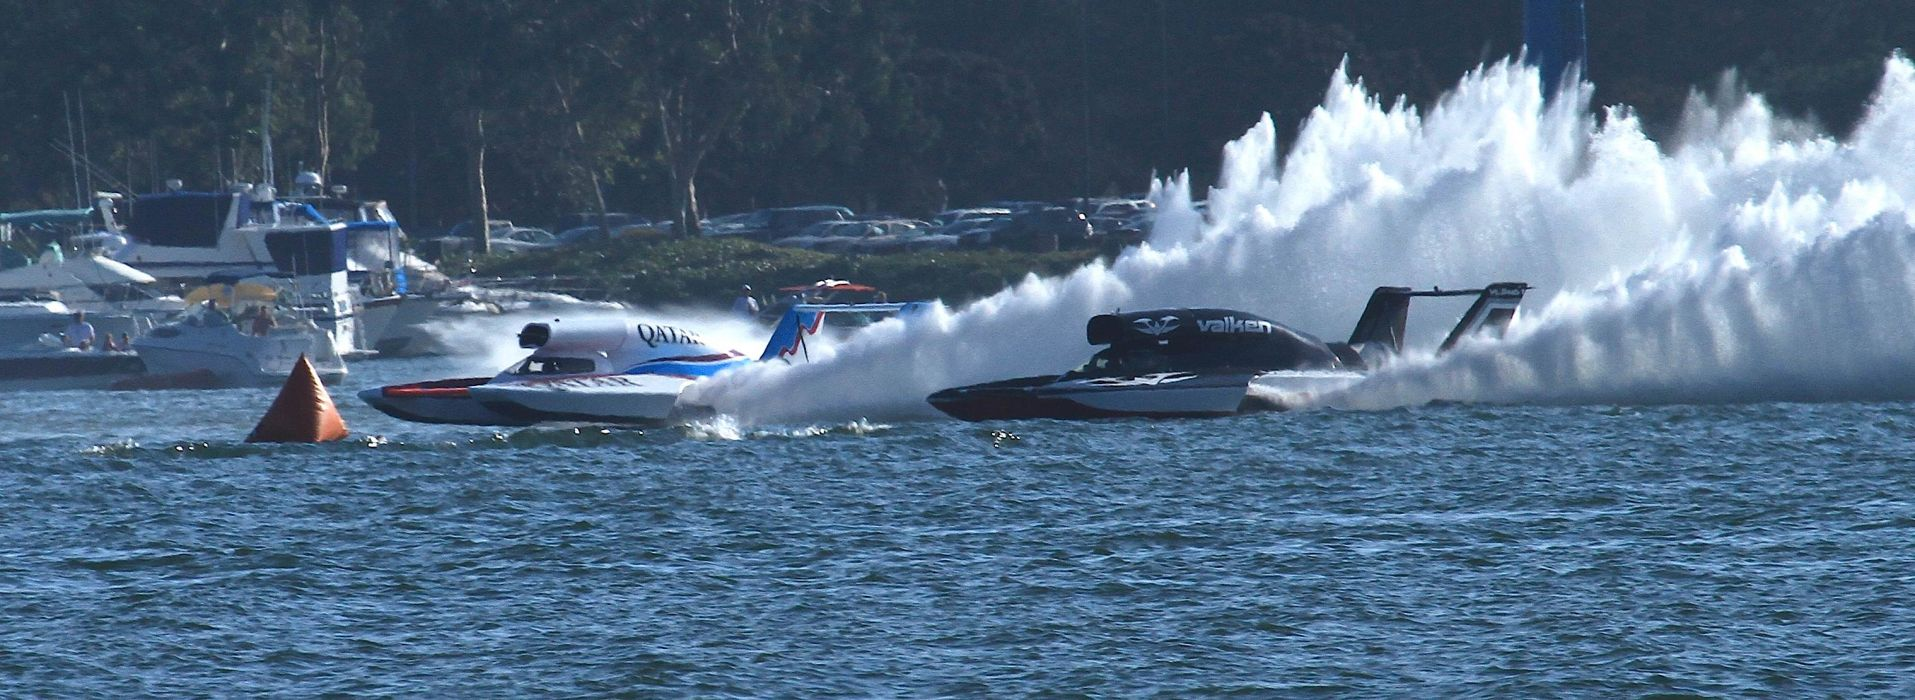 UNLIMITED-HYDROPLANE race racing jet hydroplane boat ship hot rod rods    tk wallpaper